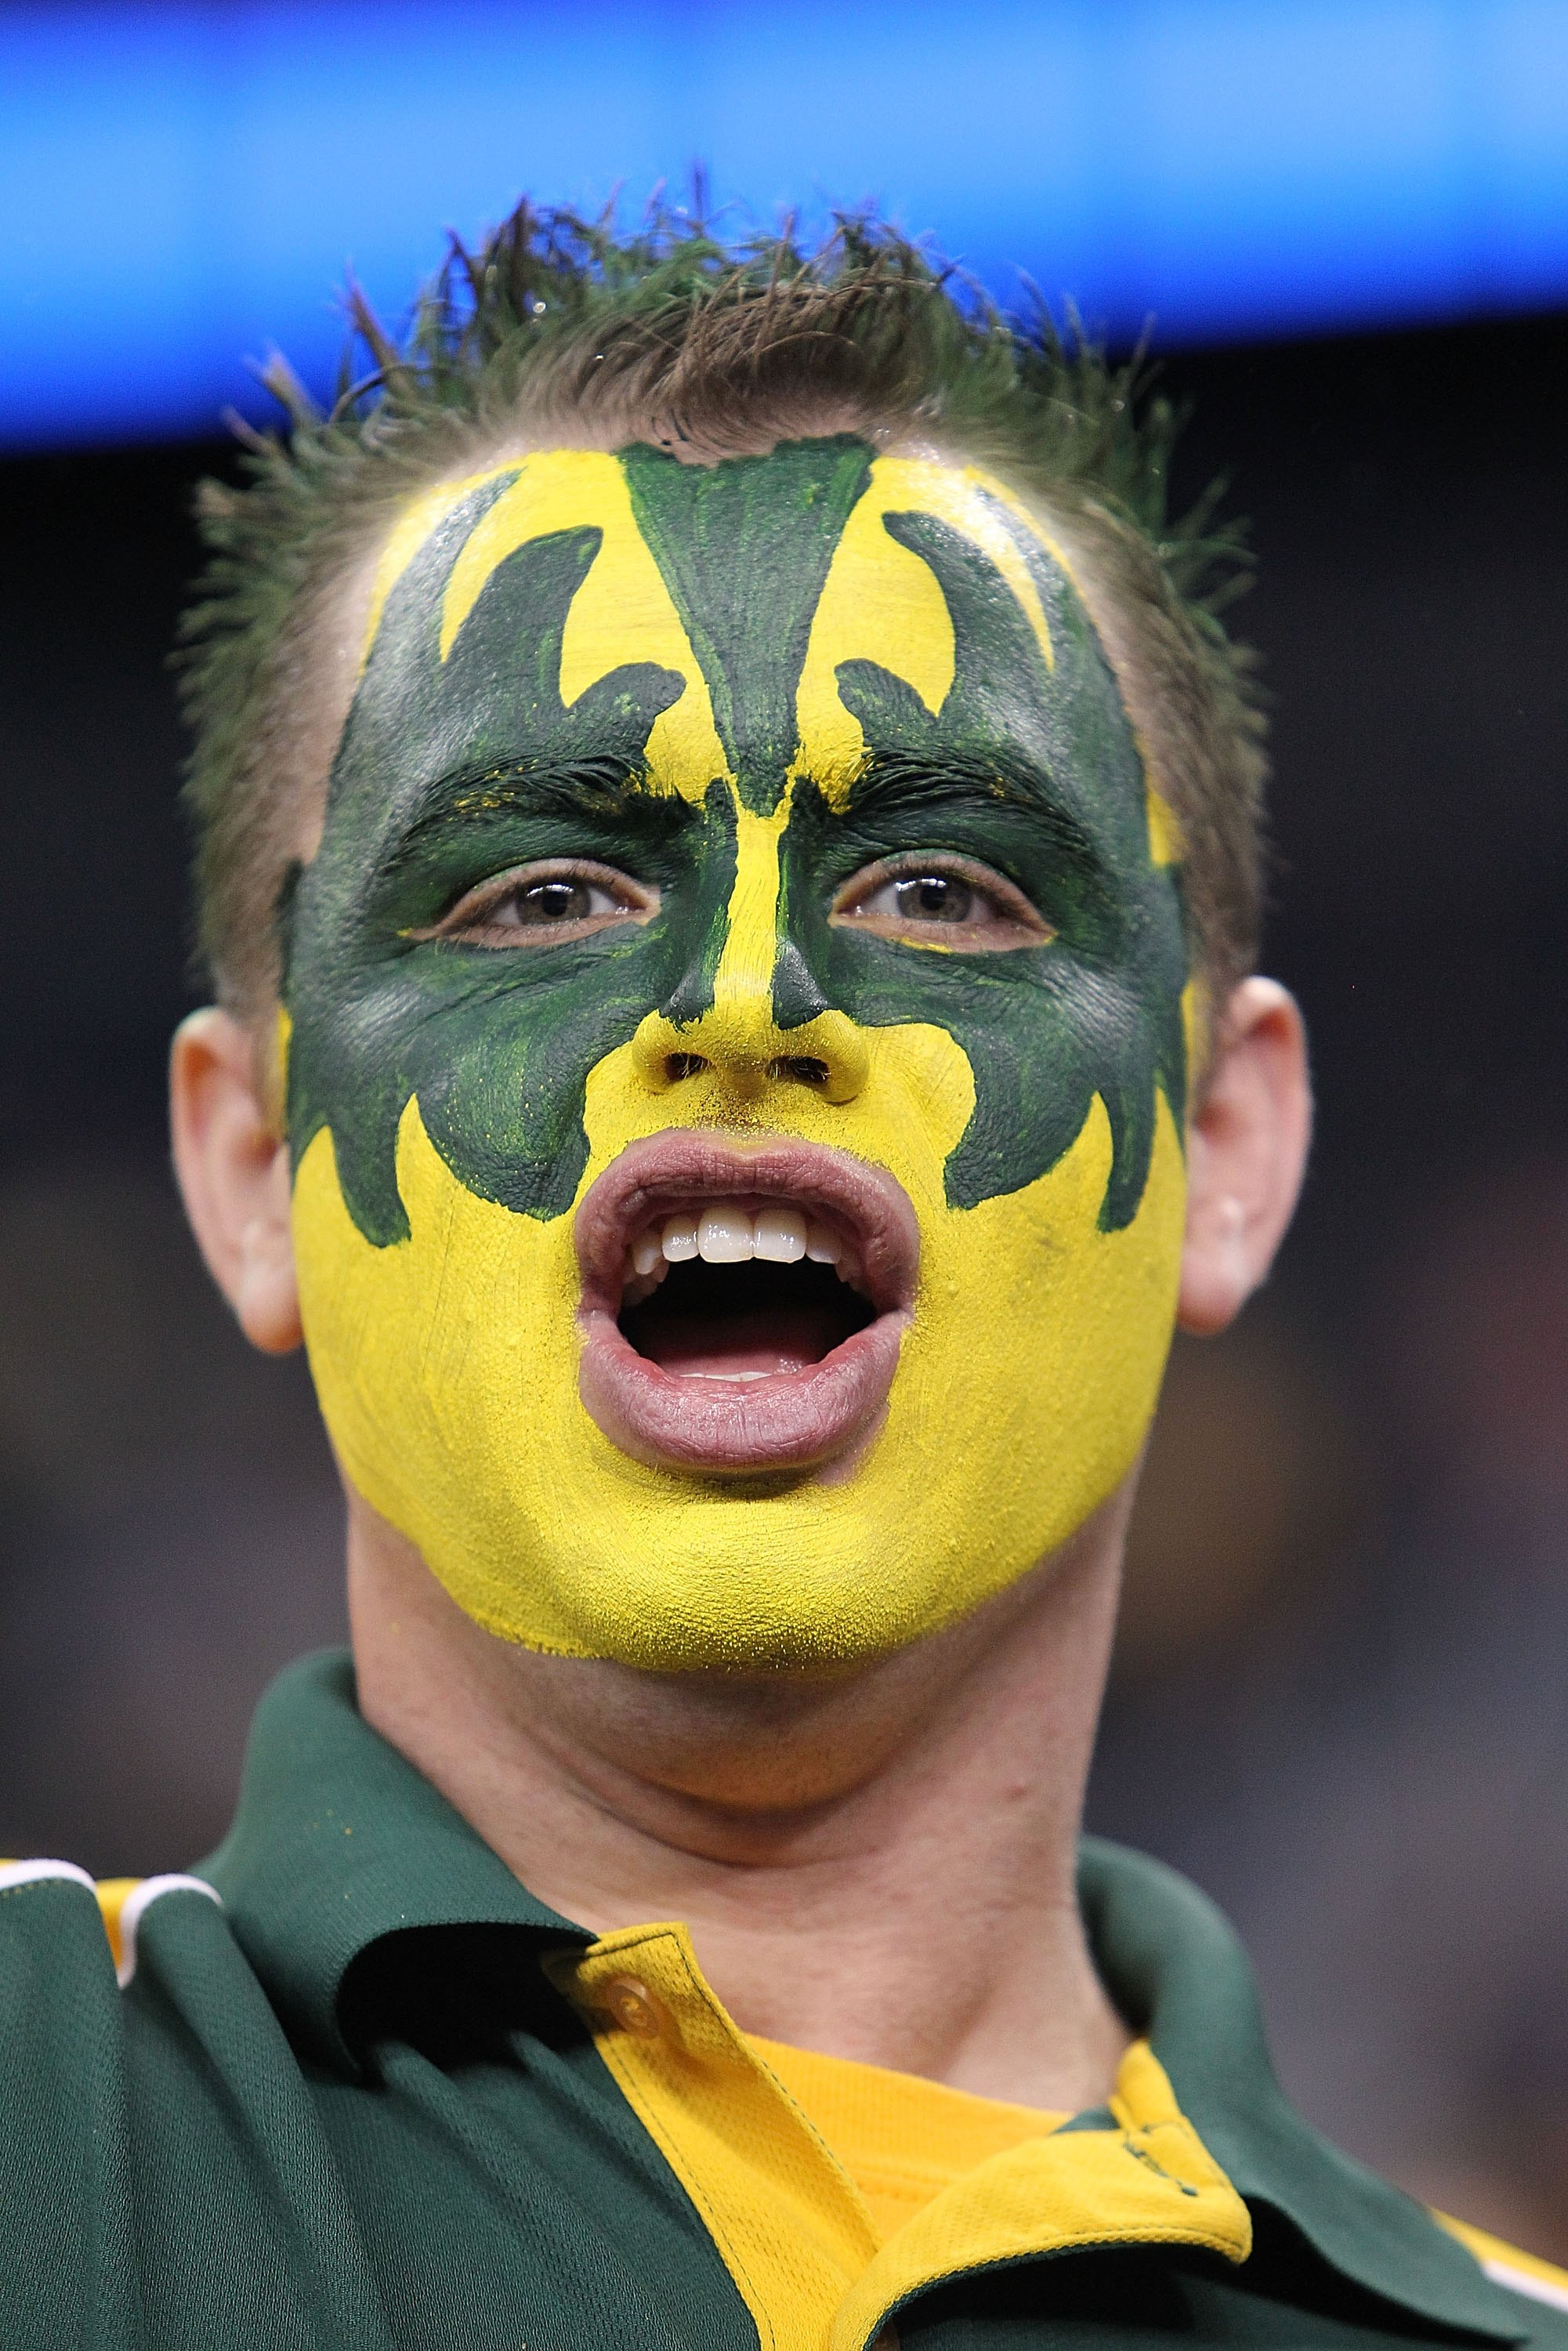 HOUSTON - MARCH 28: A Baylor Bears fan during the south regional final of the 2010 NCAA men's basketball tournament at Reliant Stadium on March 28, 2010 in Houston, Texas. (Photo by Ronald Martinez/Getty Images)